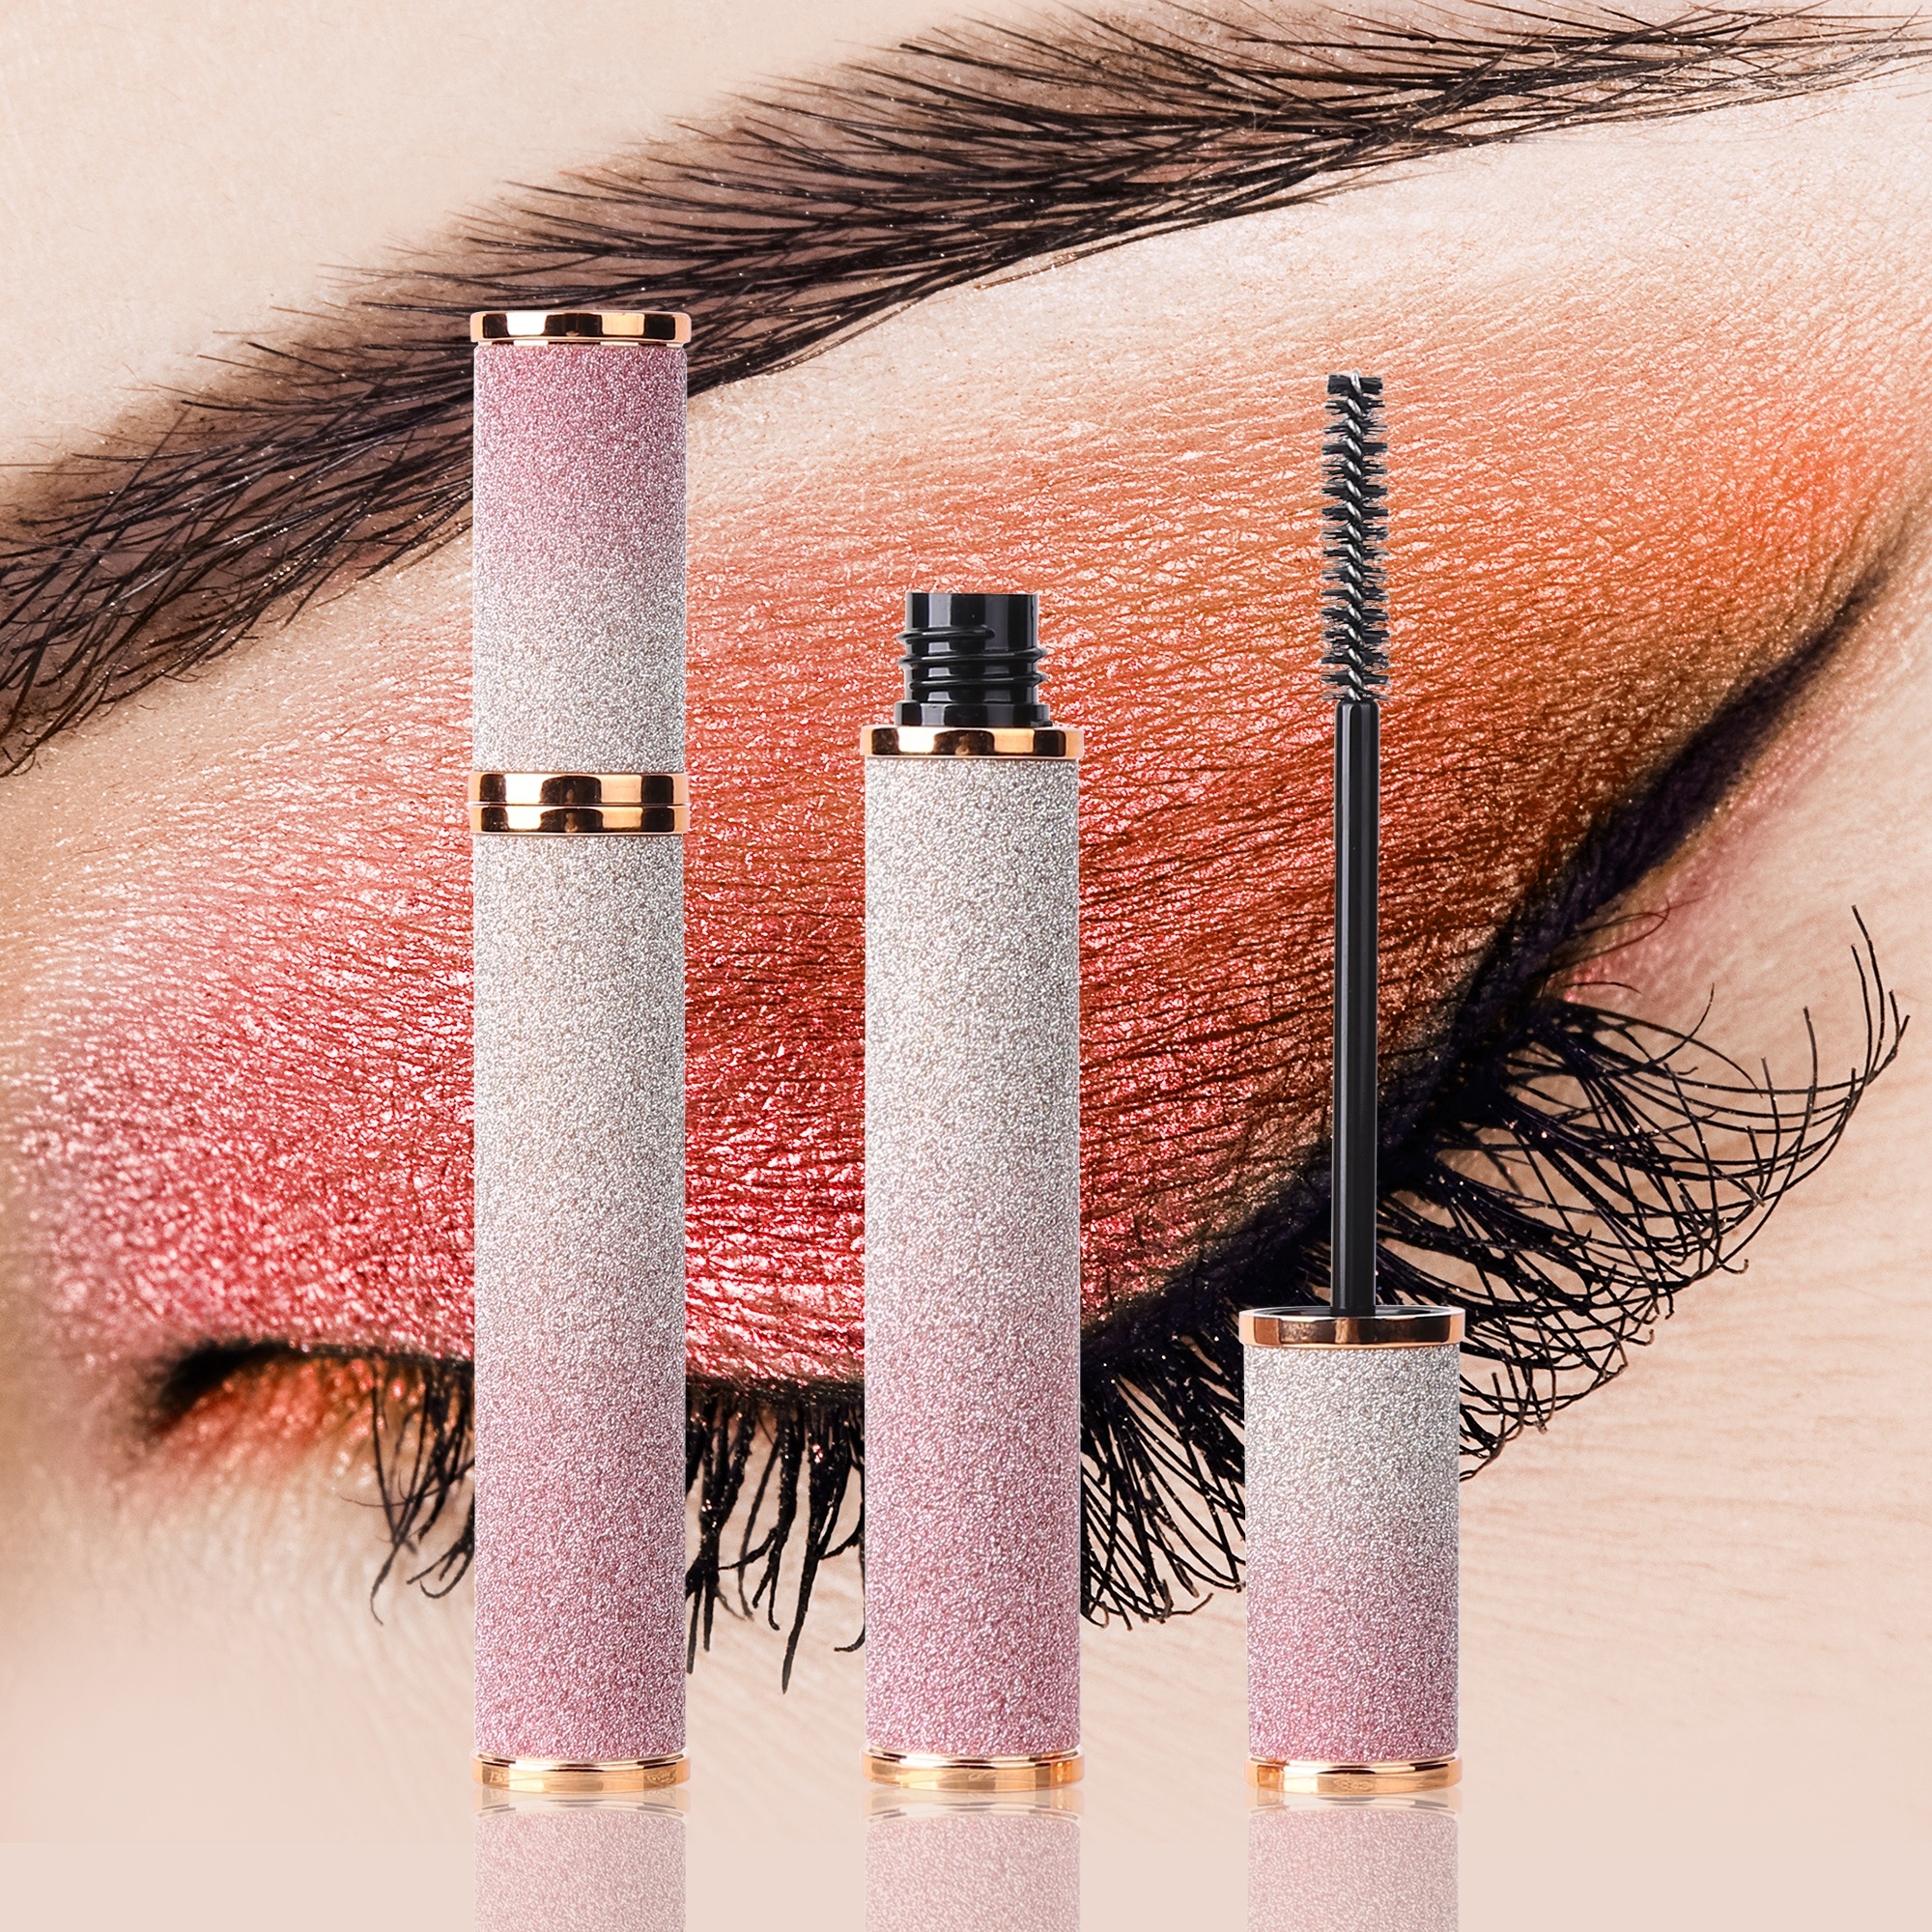 LT33 Colour mascara Lengthen Eyelashes Mascara Make Your Own Brand Makeup Vegan 4D Fiber Mascara